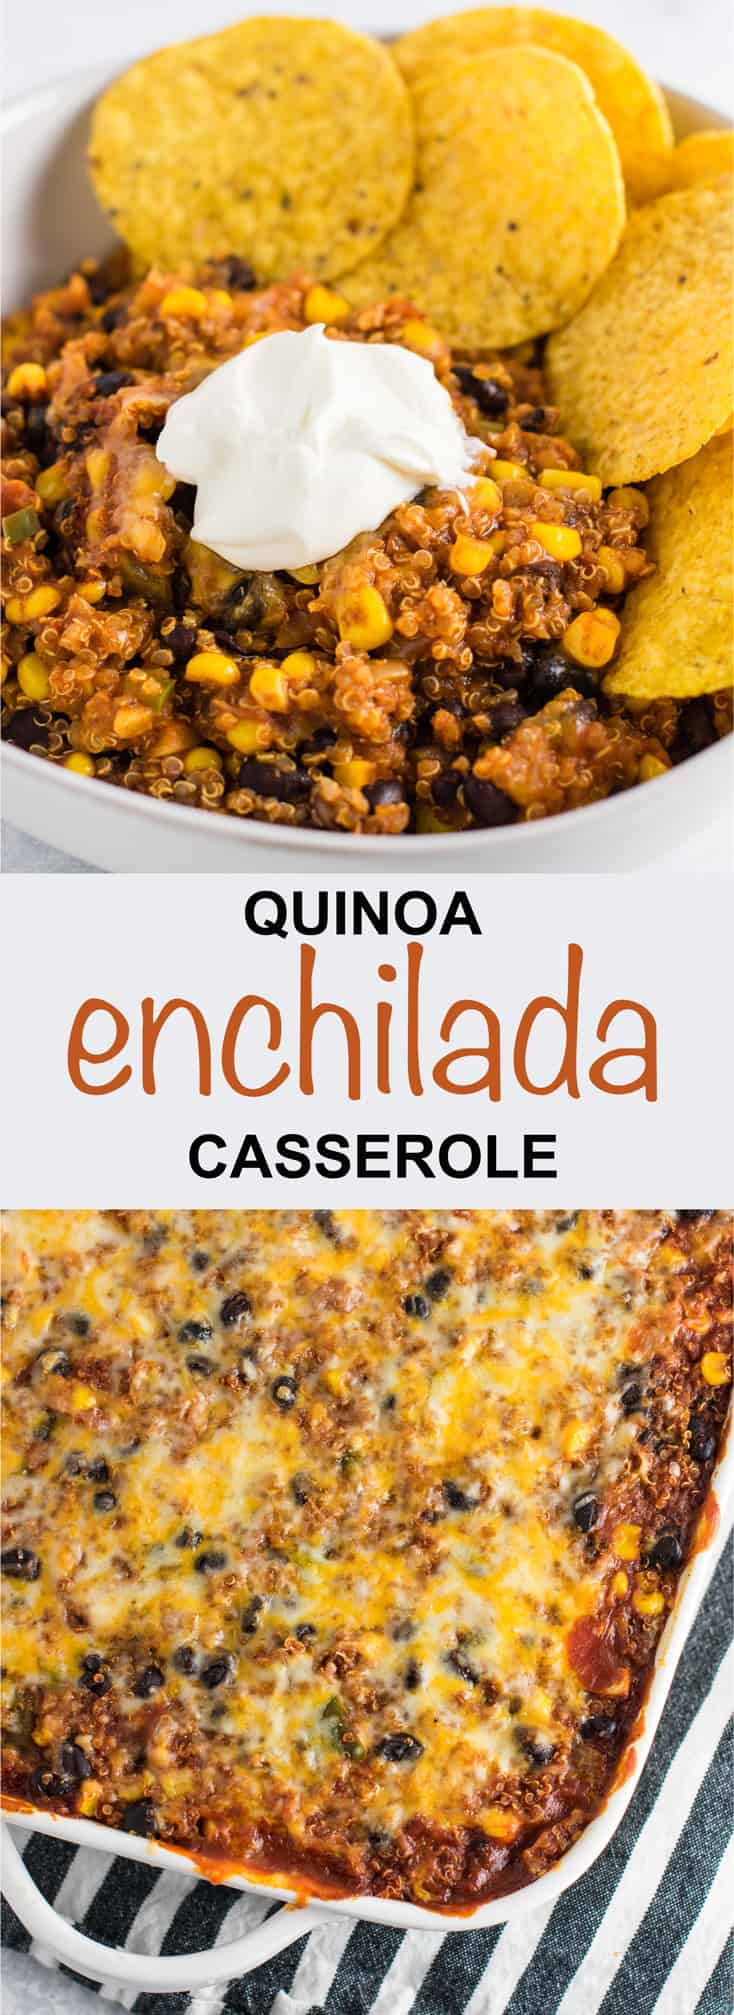 This Mexican quinoa enchilada bake is packed full of veggies and flavor. Cheesy lightened up comfort food. You'll love this recipe! #meatless #quinoa #quinoaenchilada #mexican #casserole #vegetarian #dinner